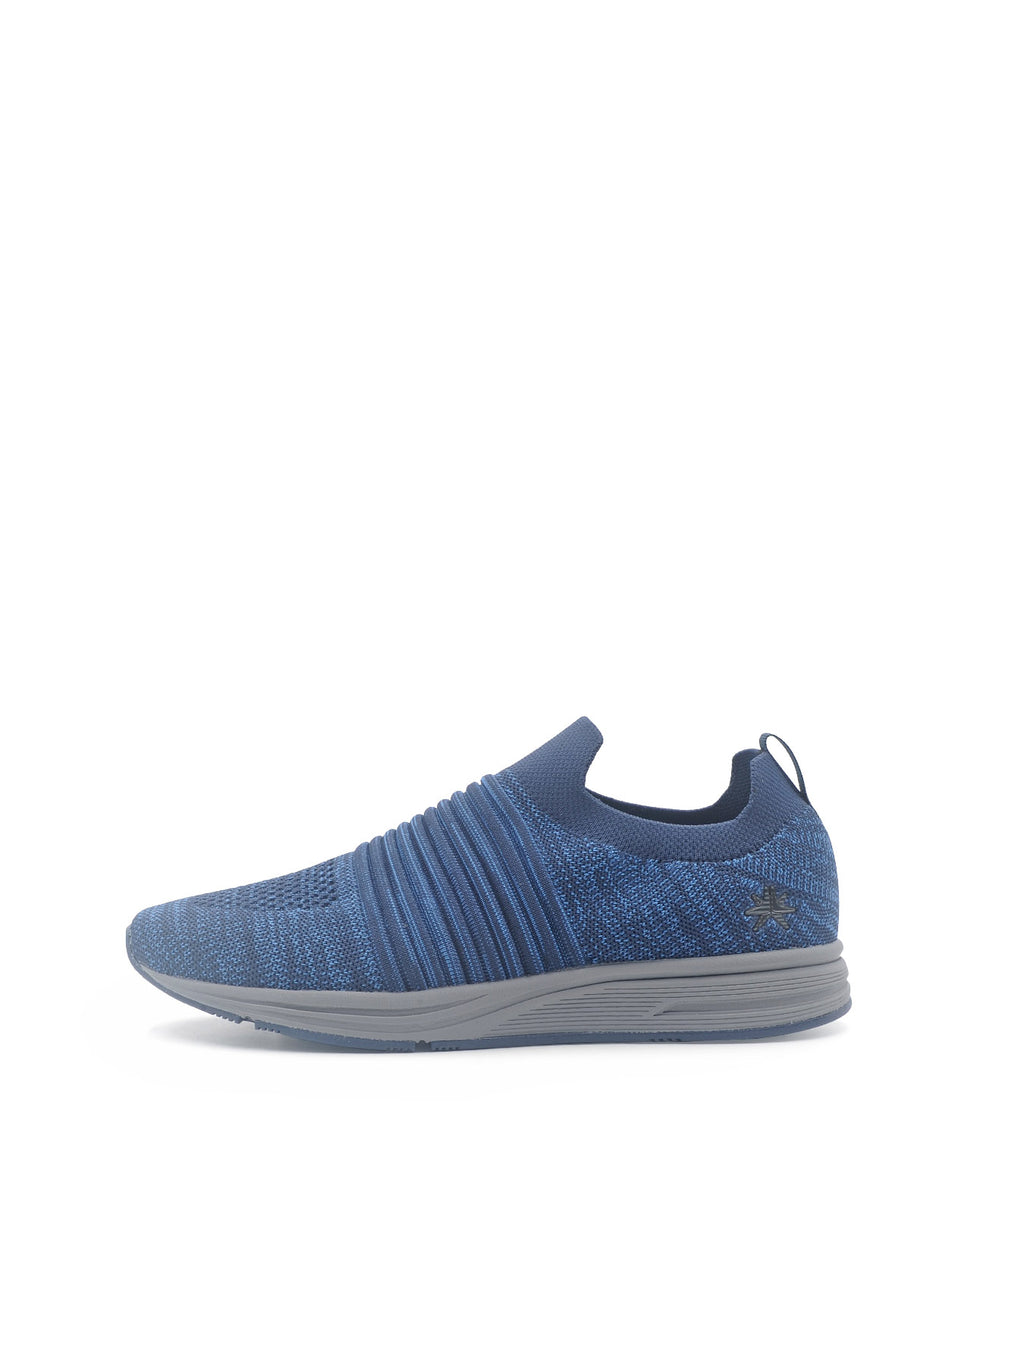 Larrie Navy LaKnit Textured Upper Slip On Shoes